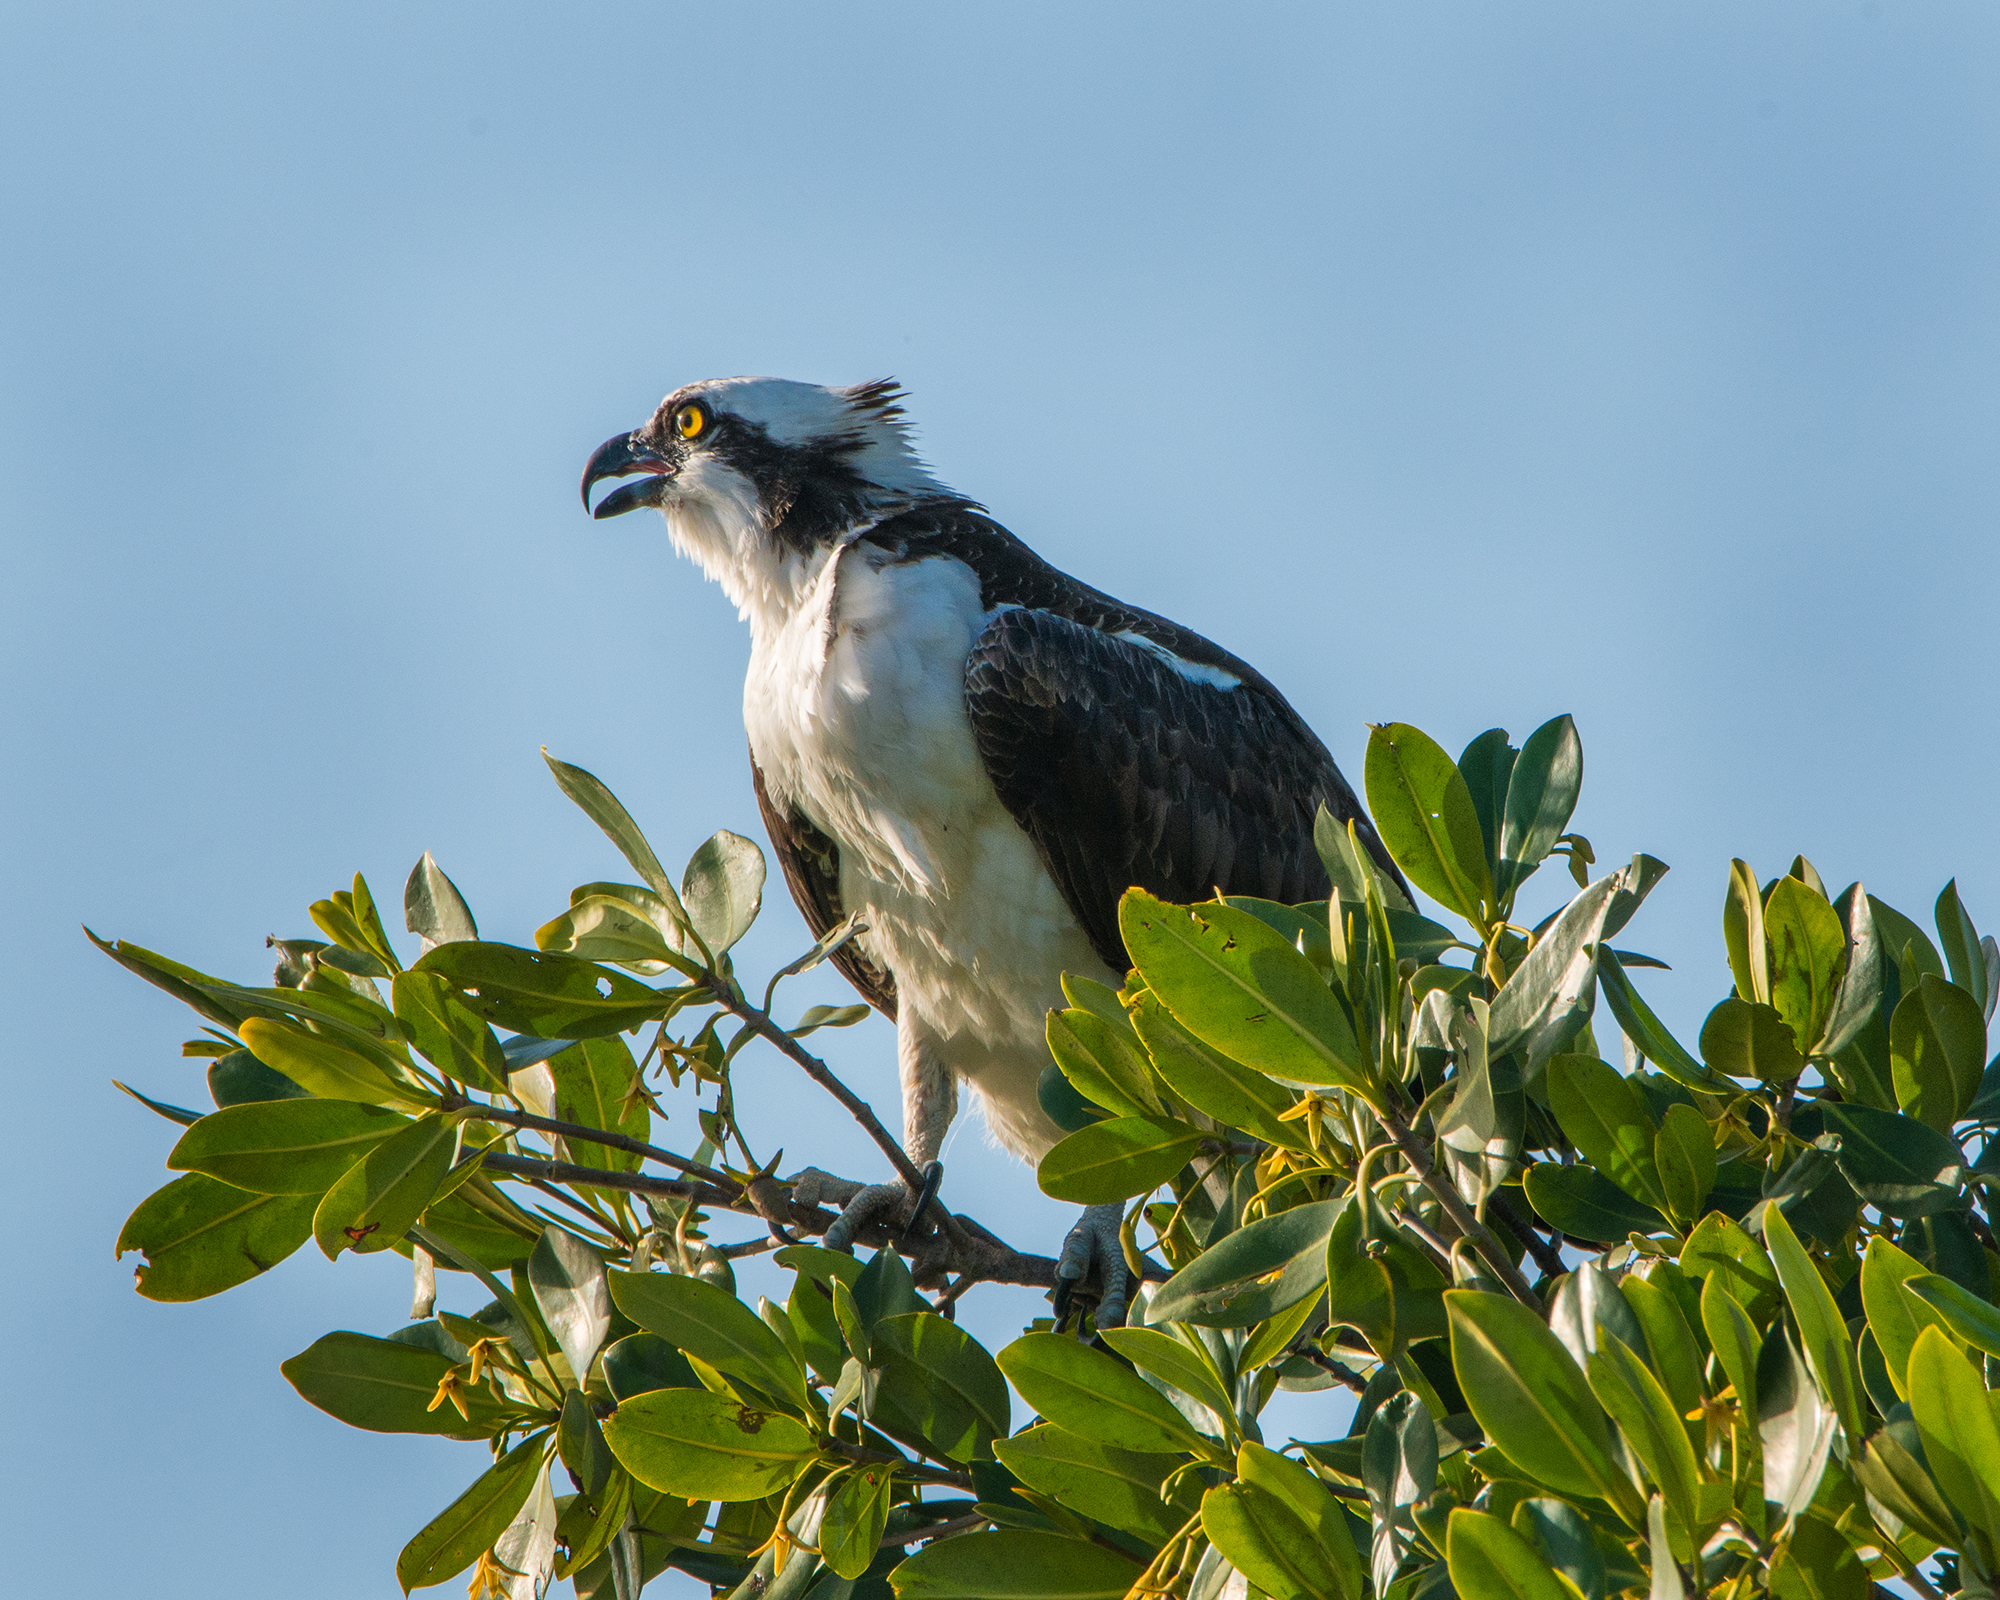 #sanibel, #osprey, #eye, #male, #perch, #dusk, #dingdarling